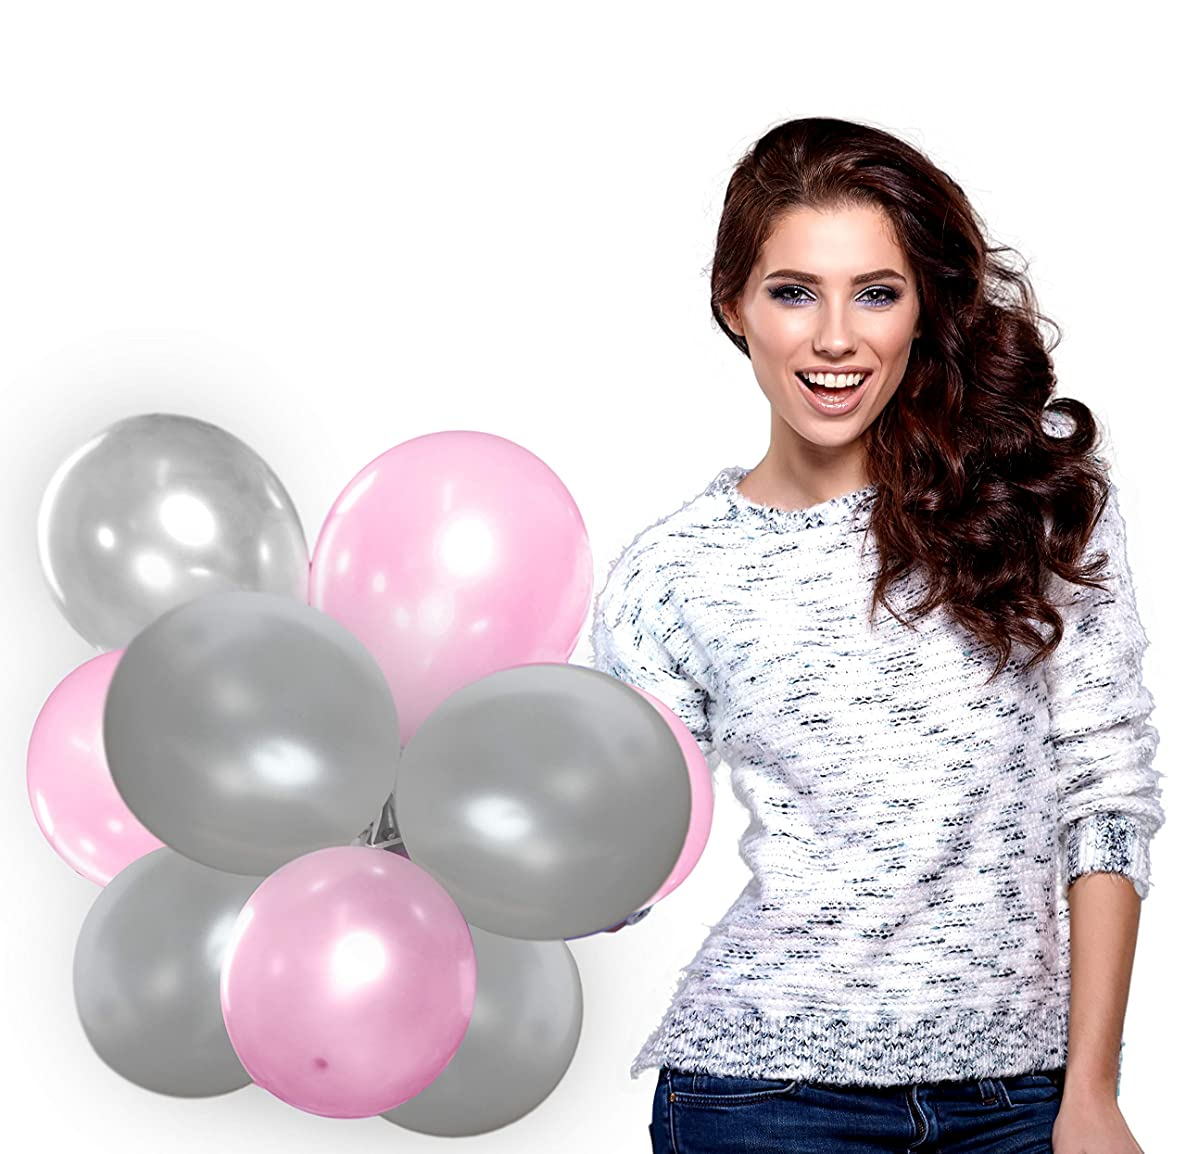 Treasures Gifted Silver and Pink Balloons Set in Metallic Latex for Baby Shower Birthday Wedding Decorations